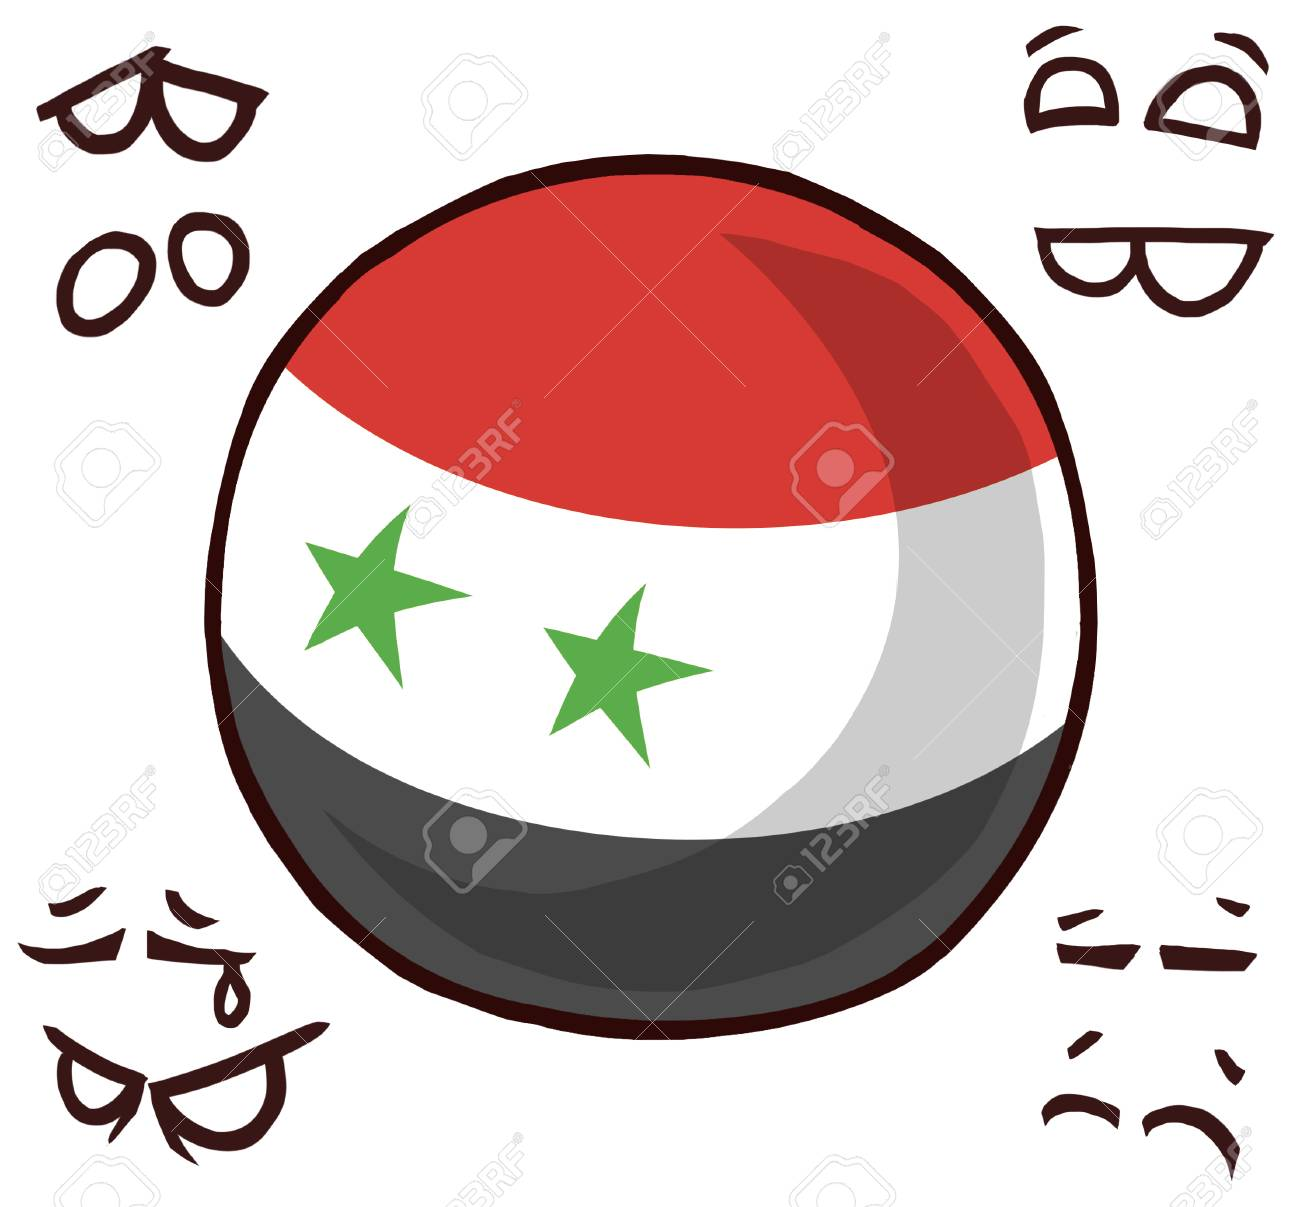 Syria country ball - 110847820